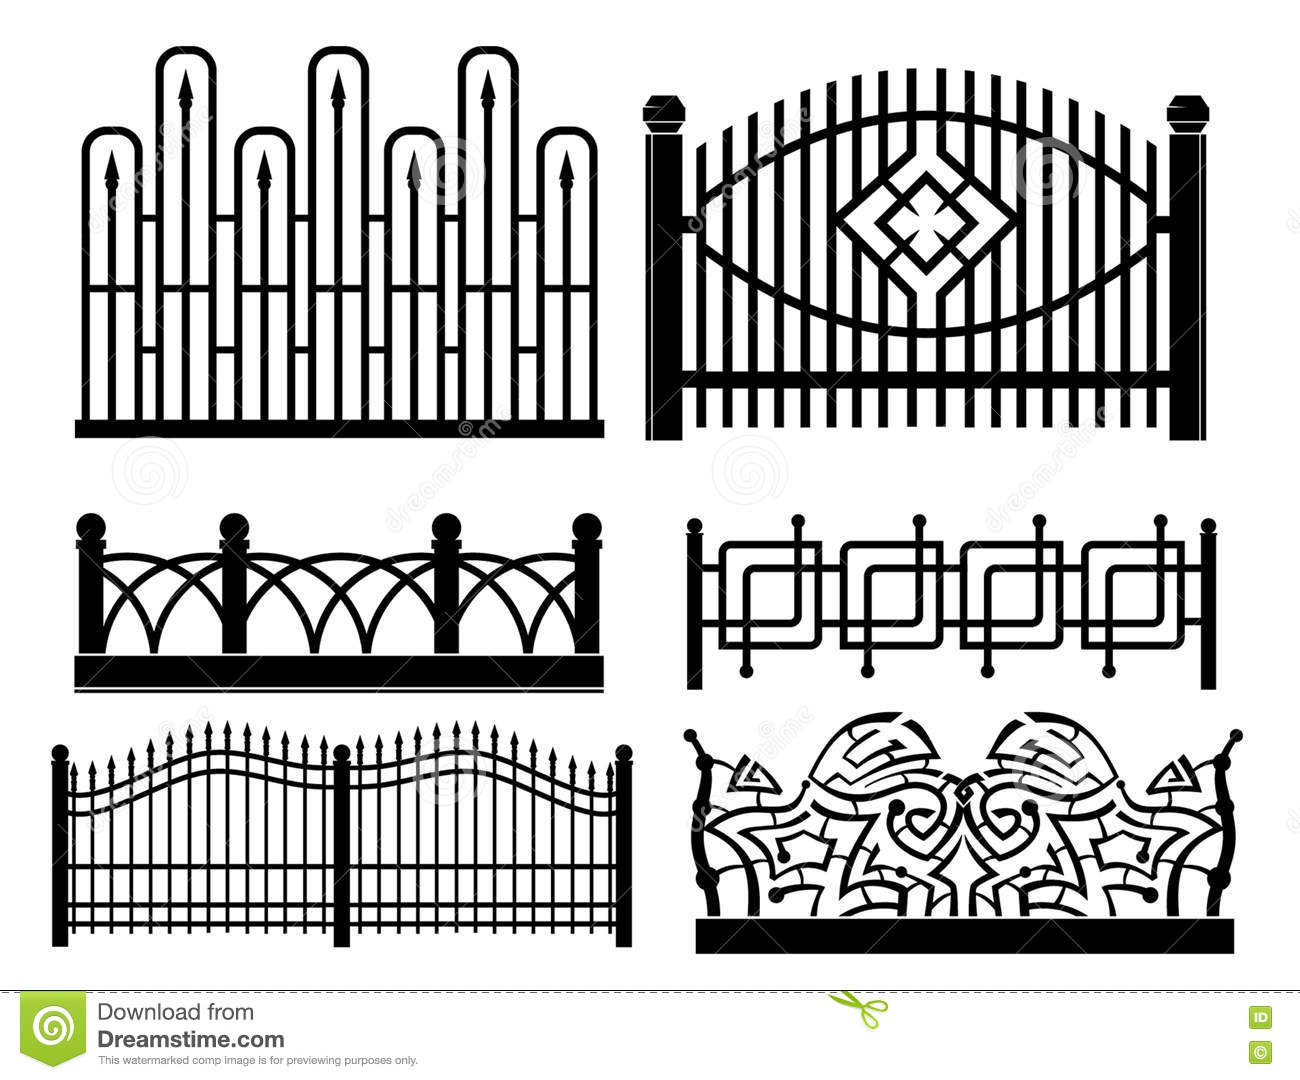 forged metal fences design iron railings 77324258 green wire fence 7 on green wire fence